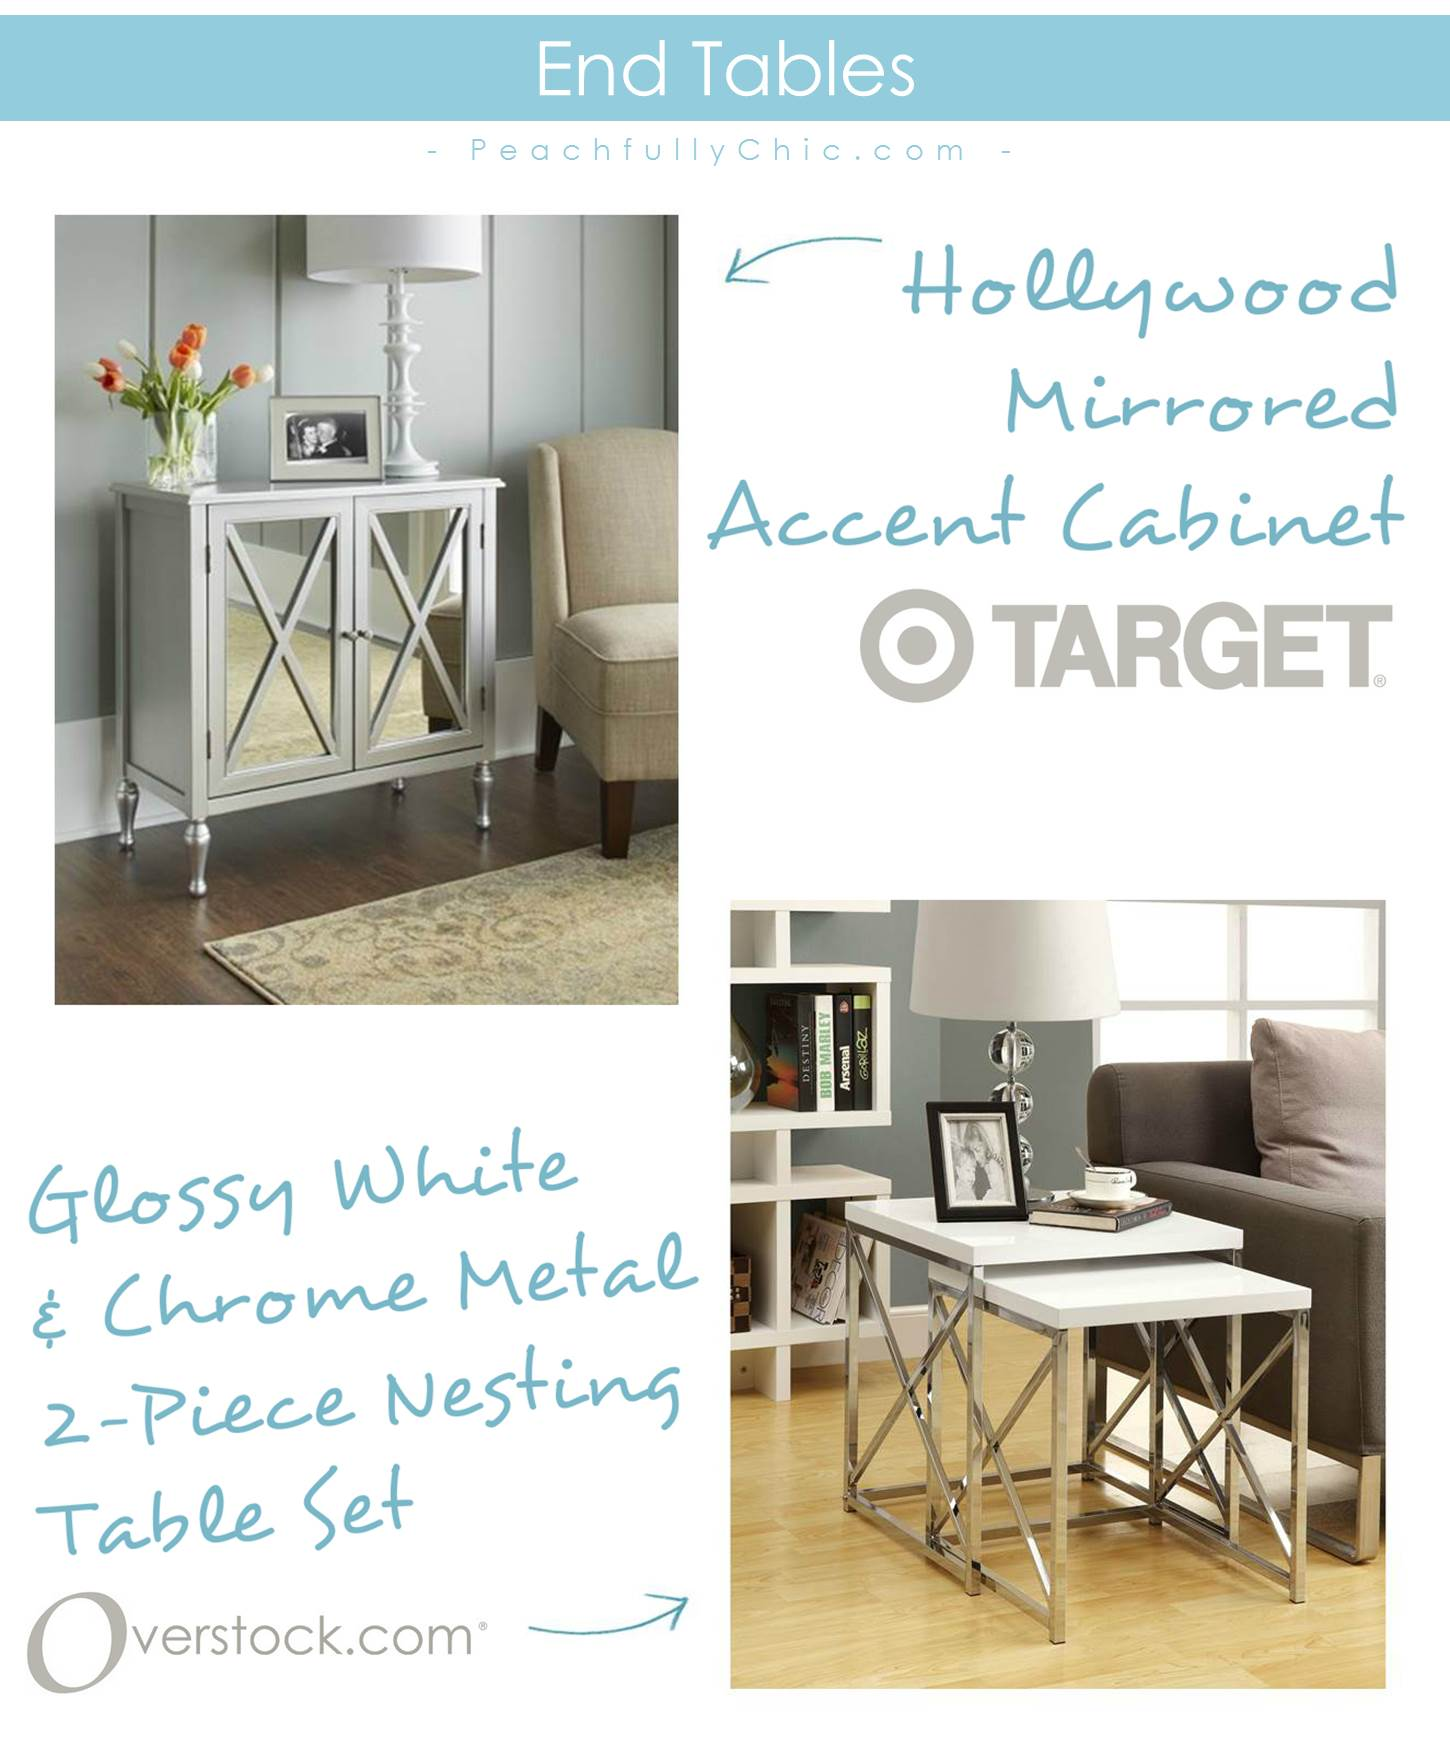 christmas coming peachfully chic target furniture hollywood mirrored accent table the end tables found are tured above covers acacia wood ashley glass high kitchen and chairs